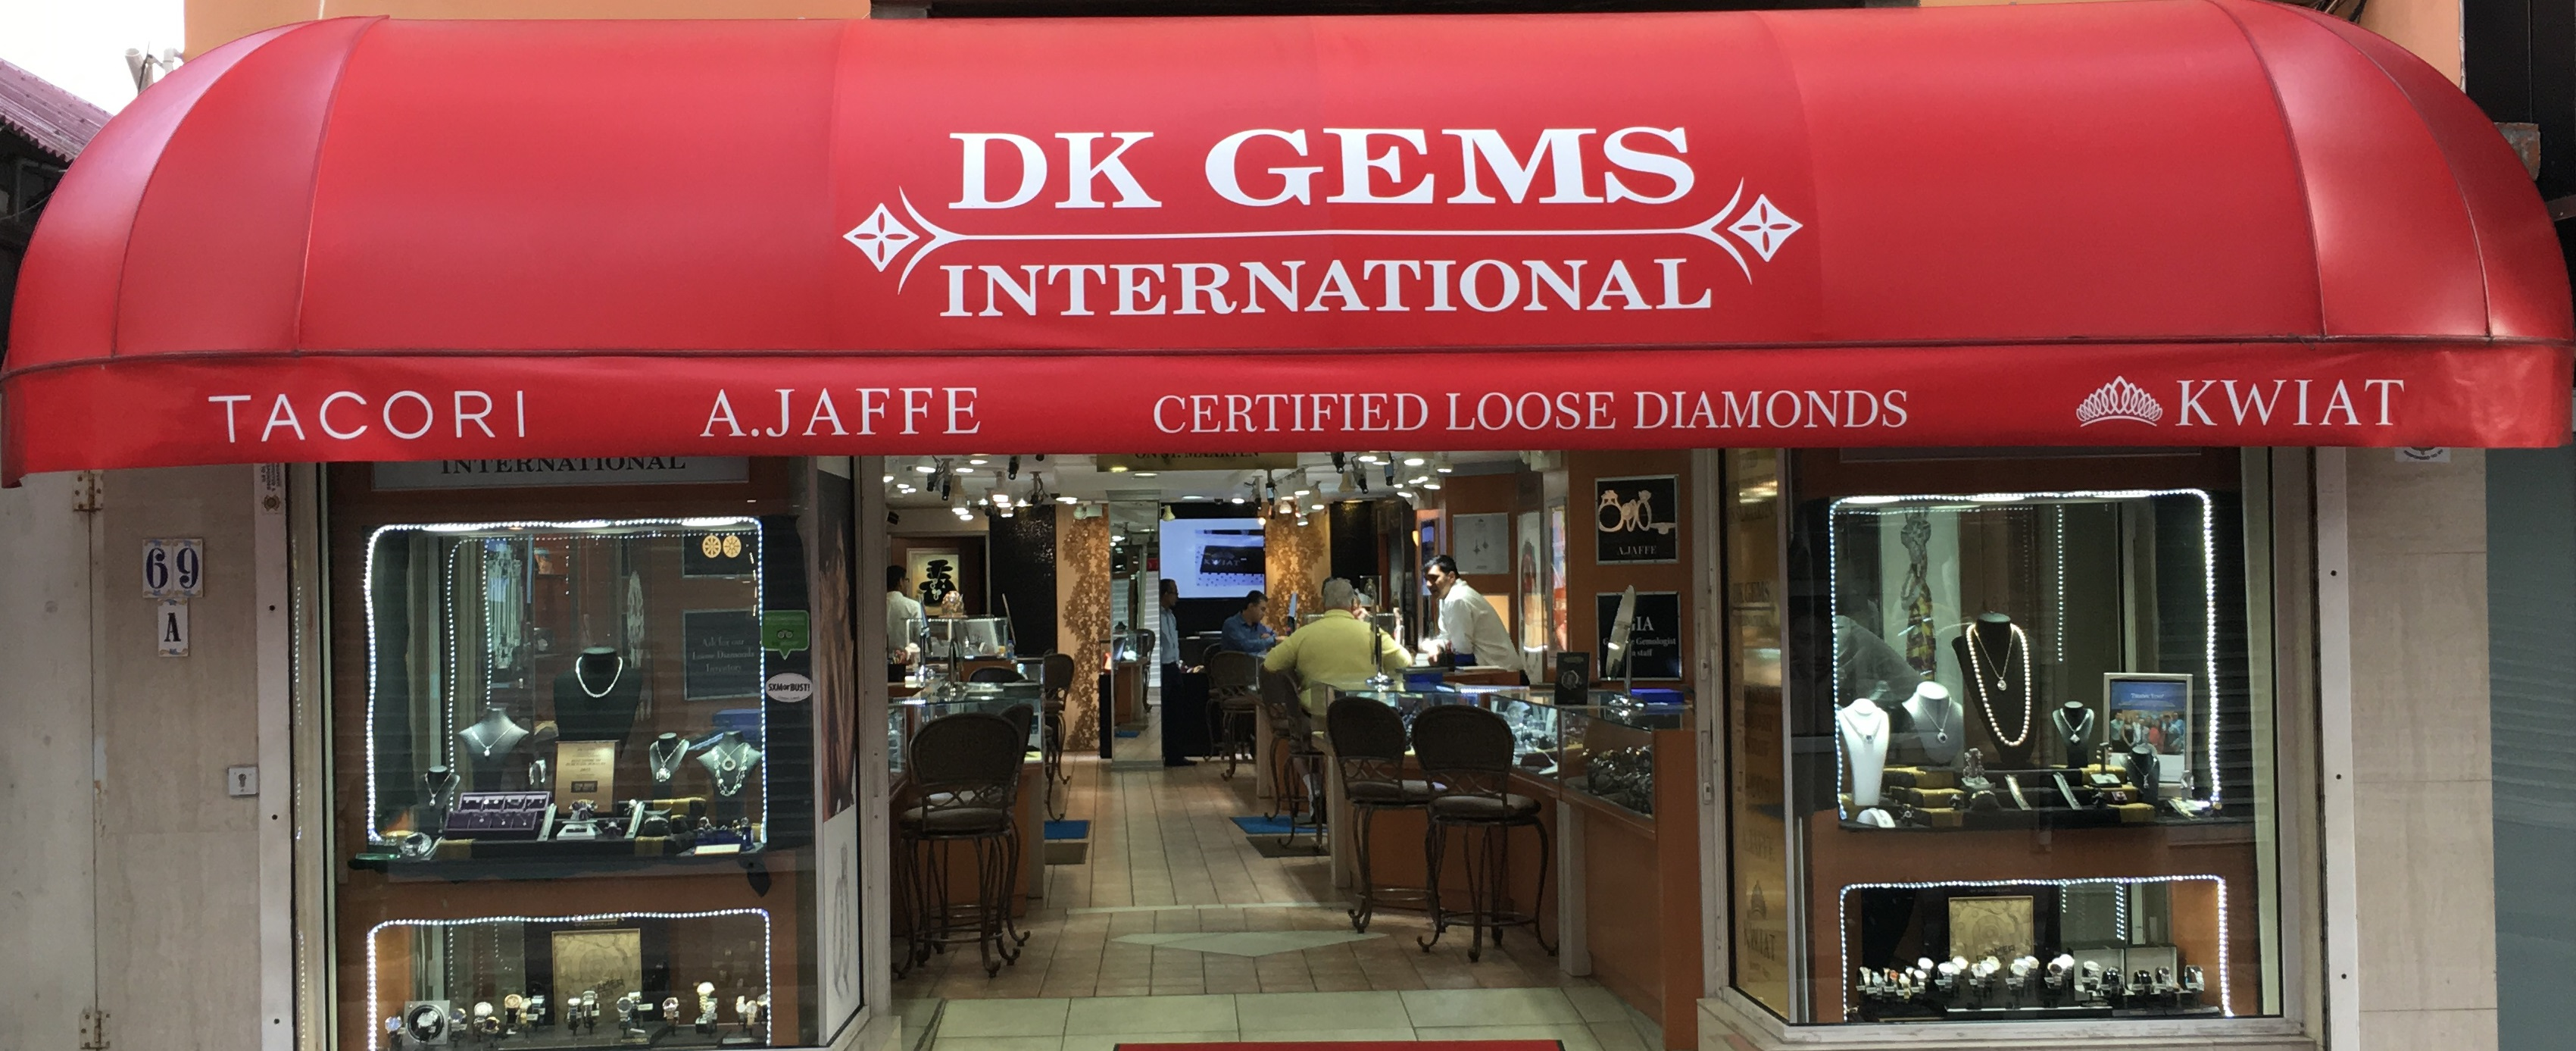 st maarten jewelry DK Gems International VOTED BEST St Maarten Jewelry stores